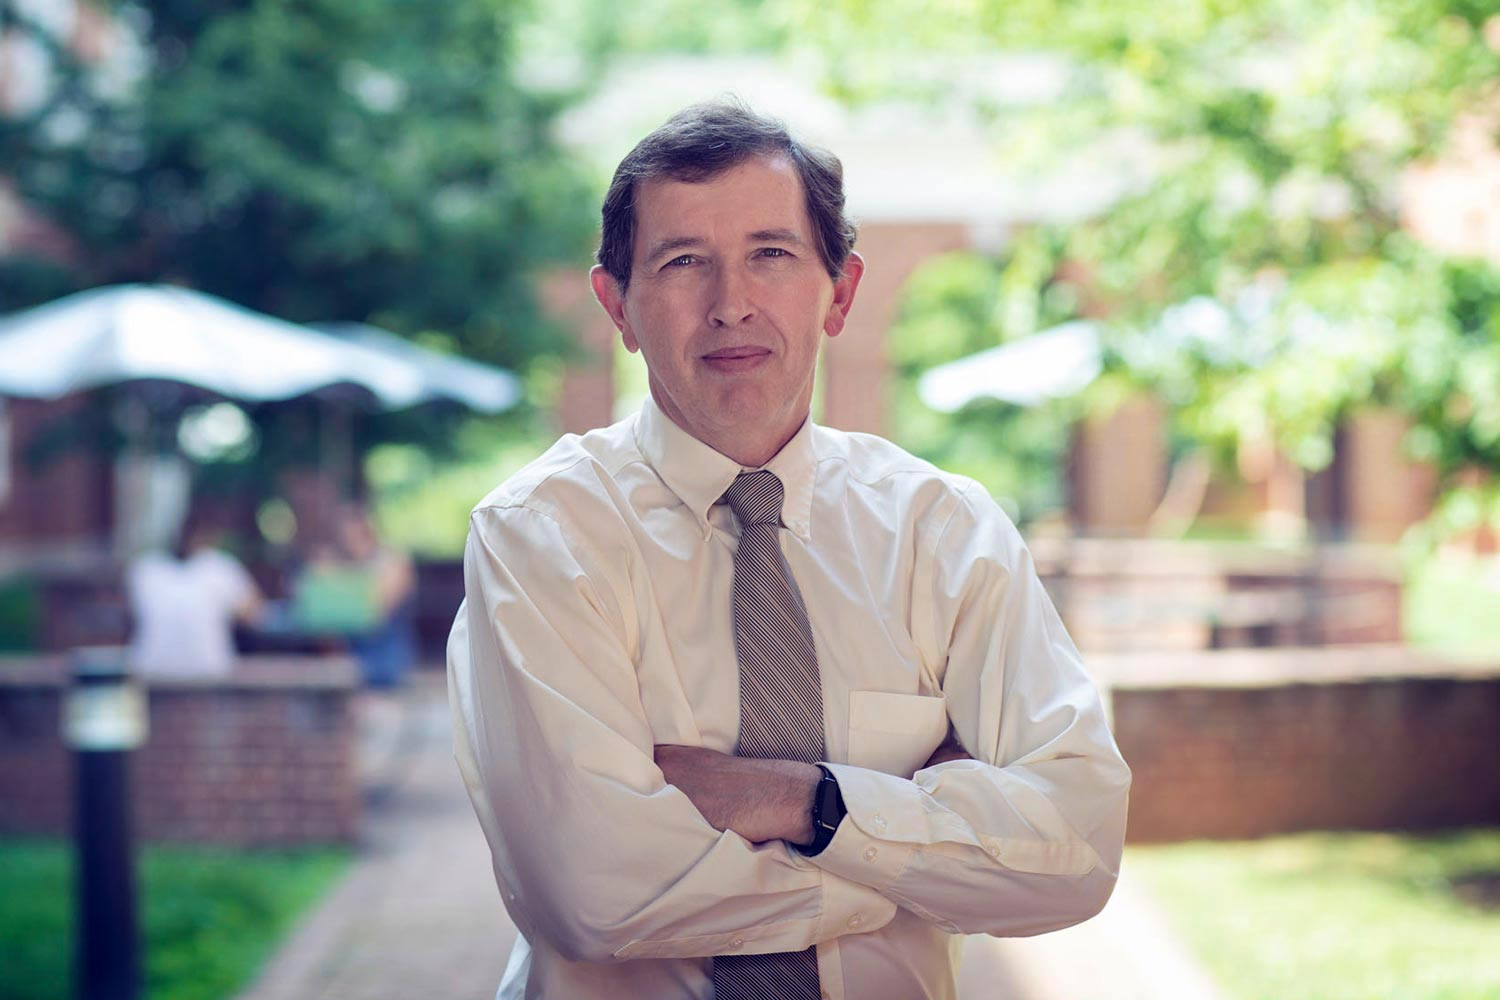 Curry School educational researcher Dewey Cornell found that forming teams to evaluate the threats students may pose is an effective way of preventing school violence.